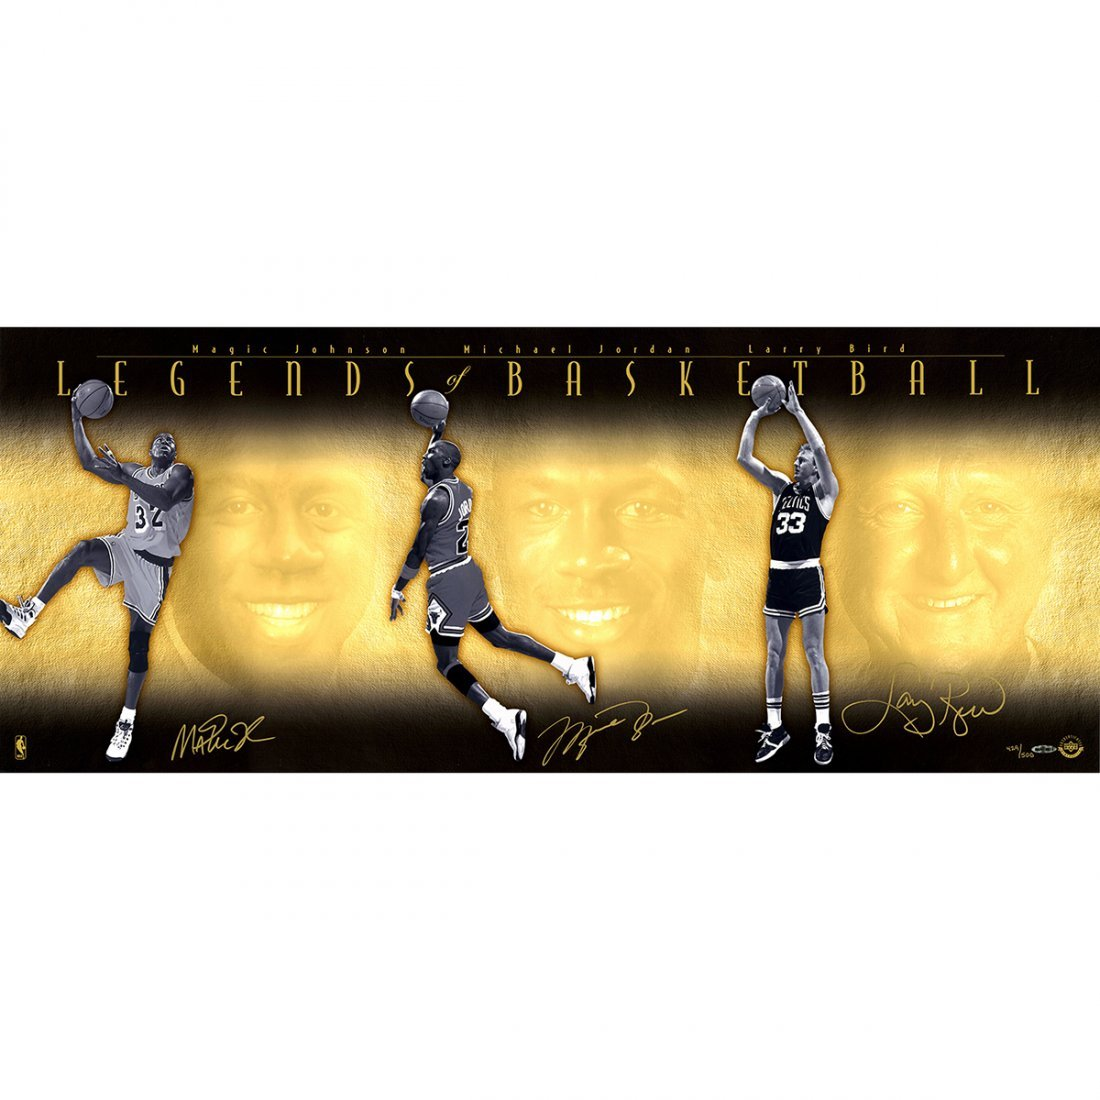 Legends Of Basketball 18x44 Collage Photo (Unframed) Si